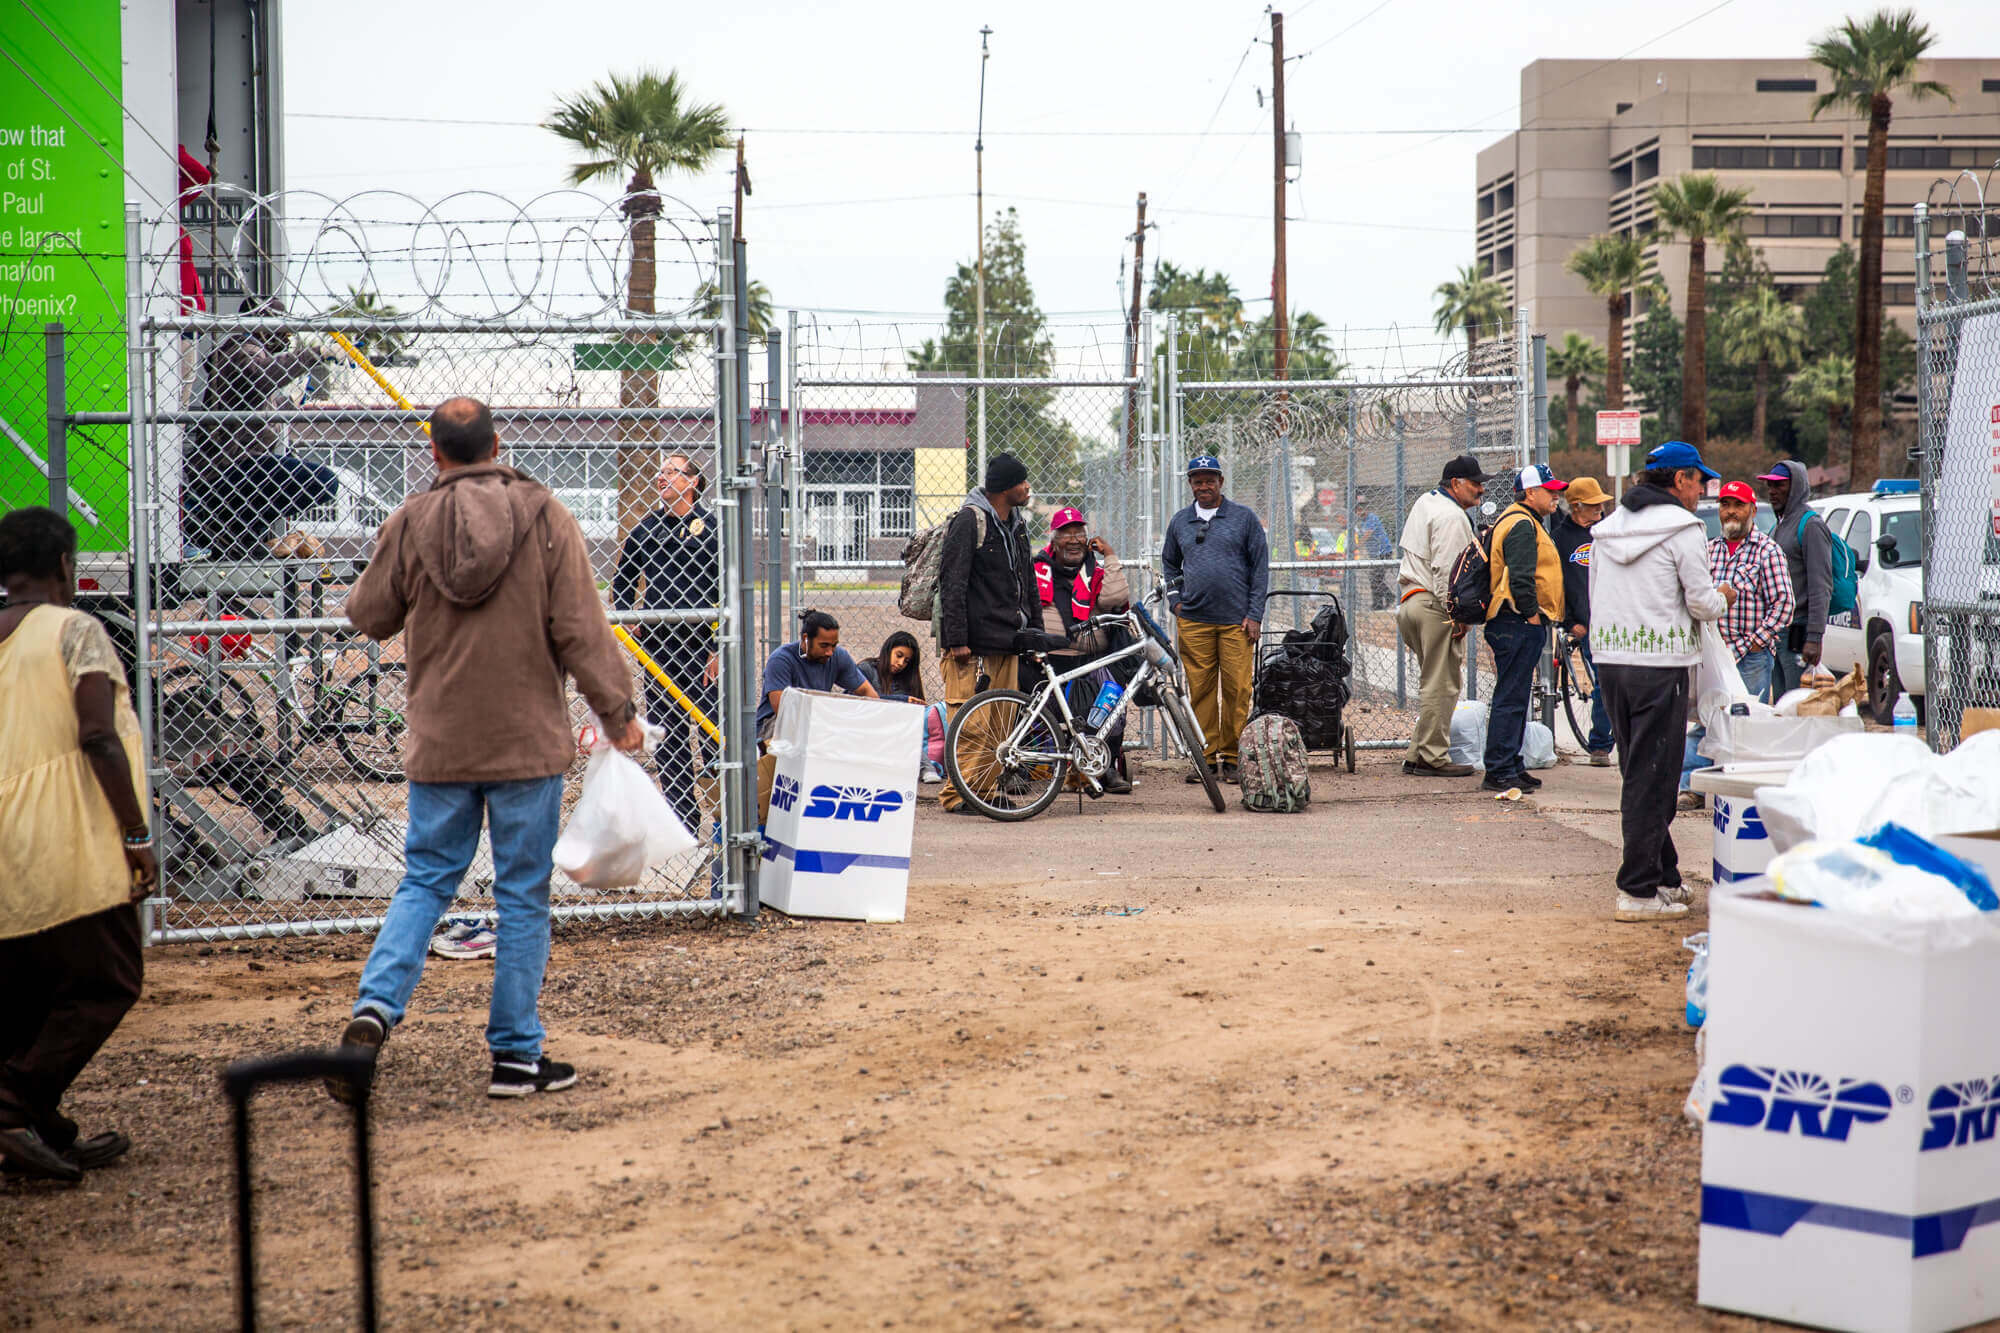 People gaather in an empty lot converted into a giving station near the Human Services Campus in downtown Phoenix on Thursday, Nov. 22, 2018. Those who don't get access to the shelter on the campus often camp out and congregate in nearby areas.